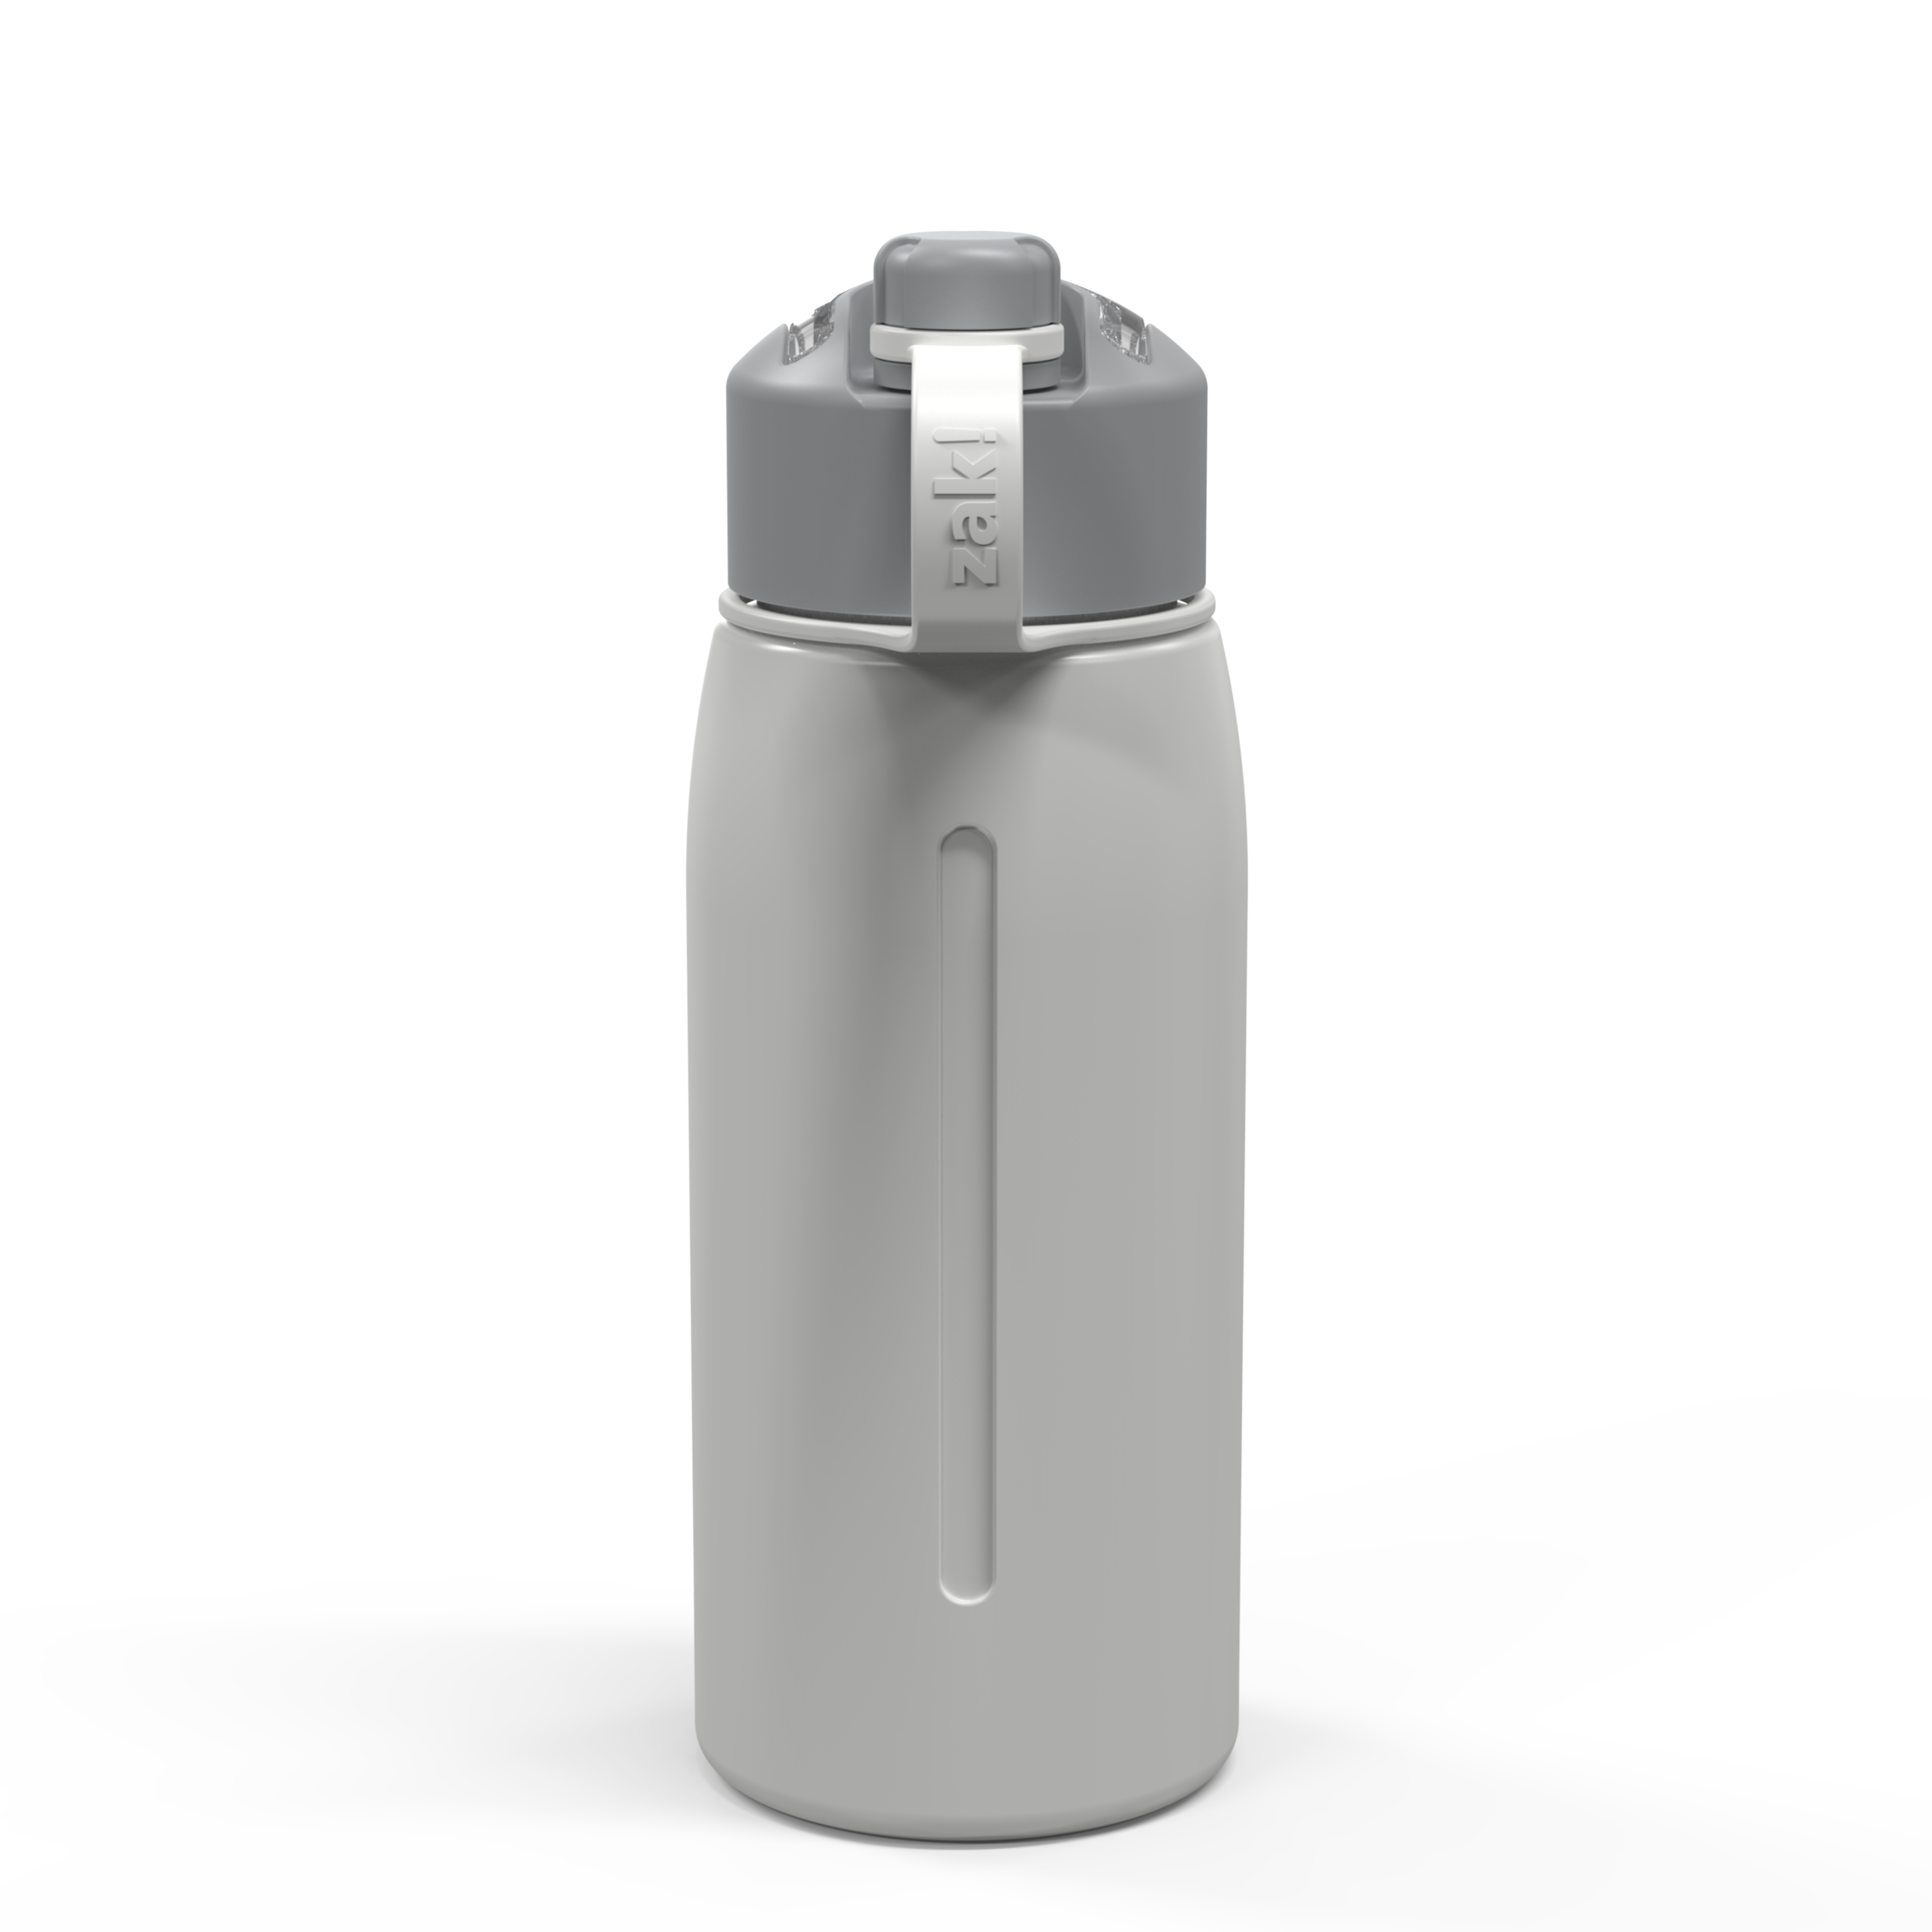 Genesis 24 ounce Vacuum Insulated Stainless Steel Tumbler, Gray slideshow image 8